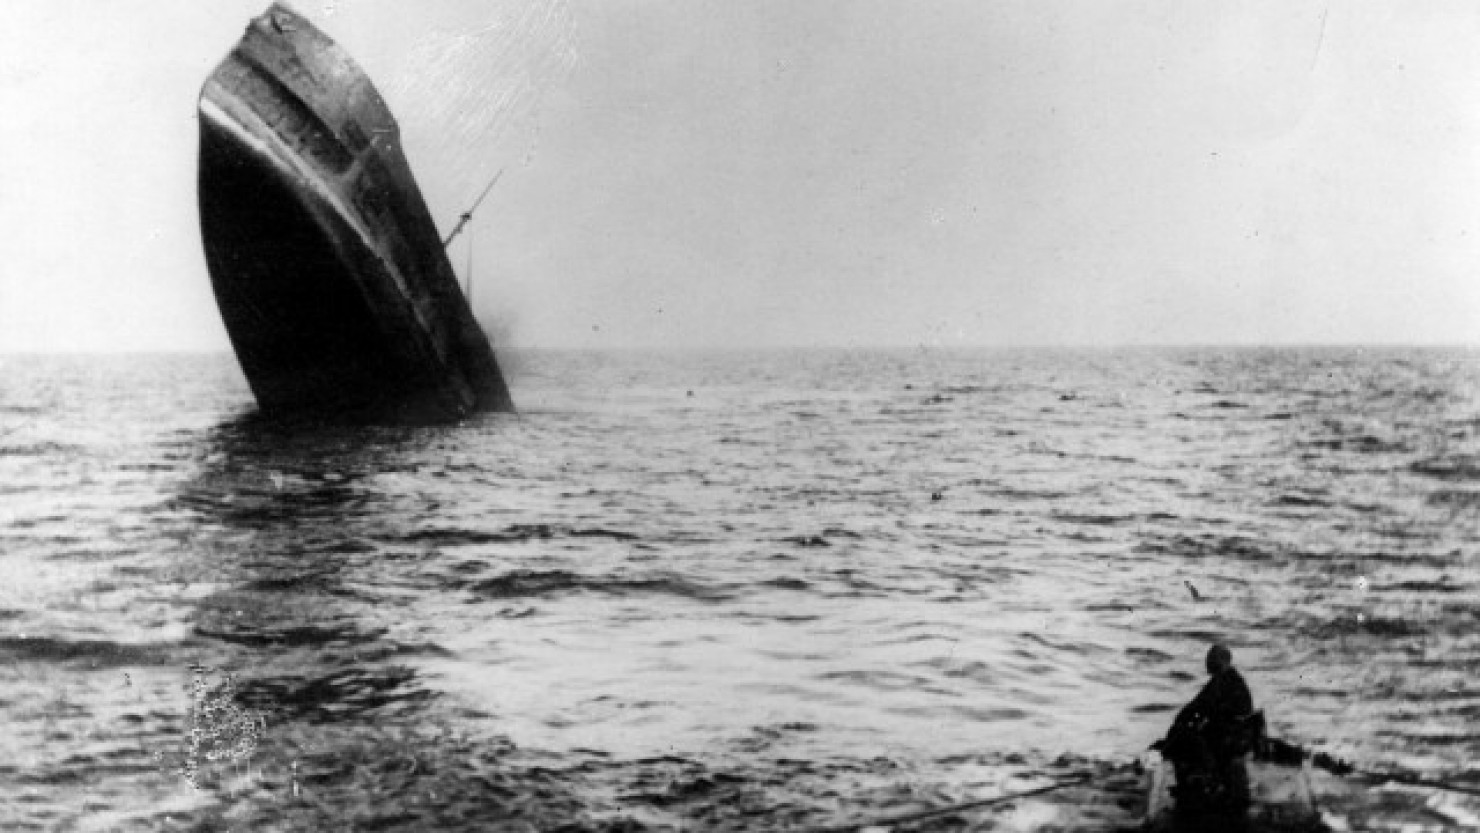 an analysis of the first world war and submarine warfare Gcse history revision section looking at the war at sea during world war one  topics include the battle of jutland, blockades and submarine warfare  as  critical as when unrestricted submarine warfare had first been introduced british  ships eventually blockaded germany meaning they gradually ran short of food  which.